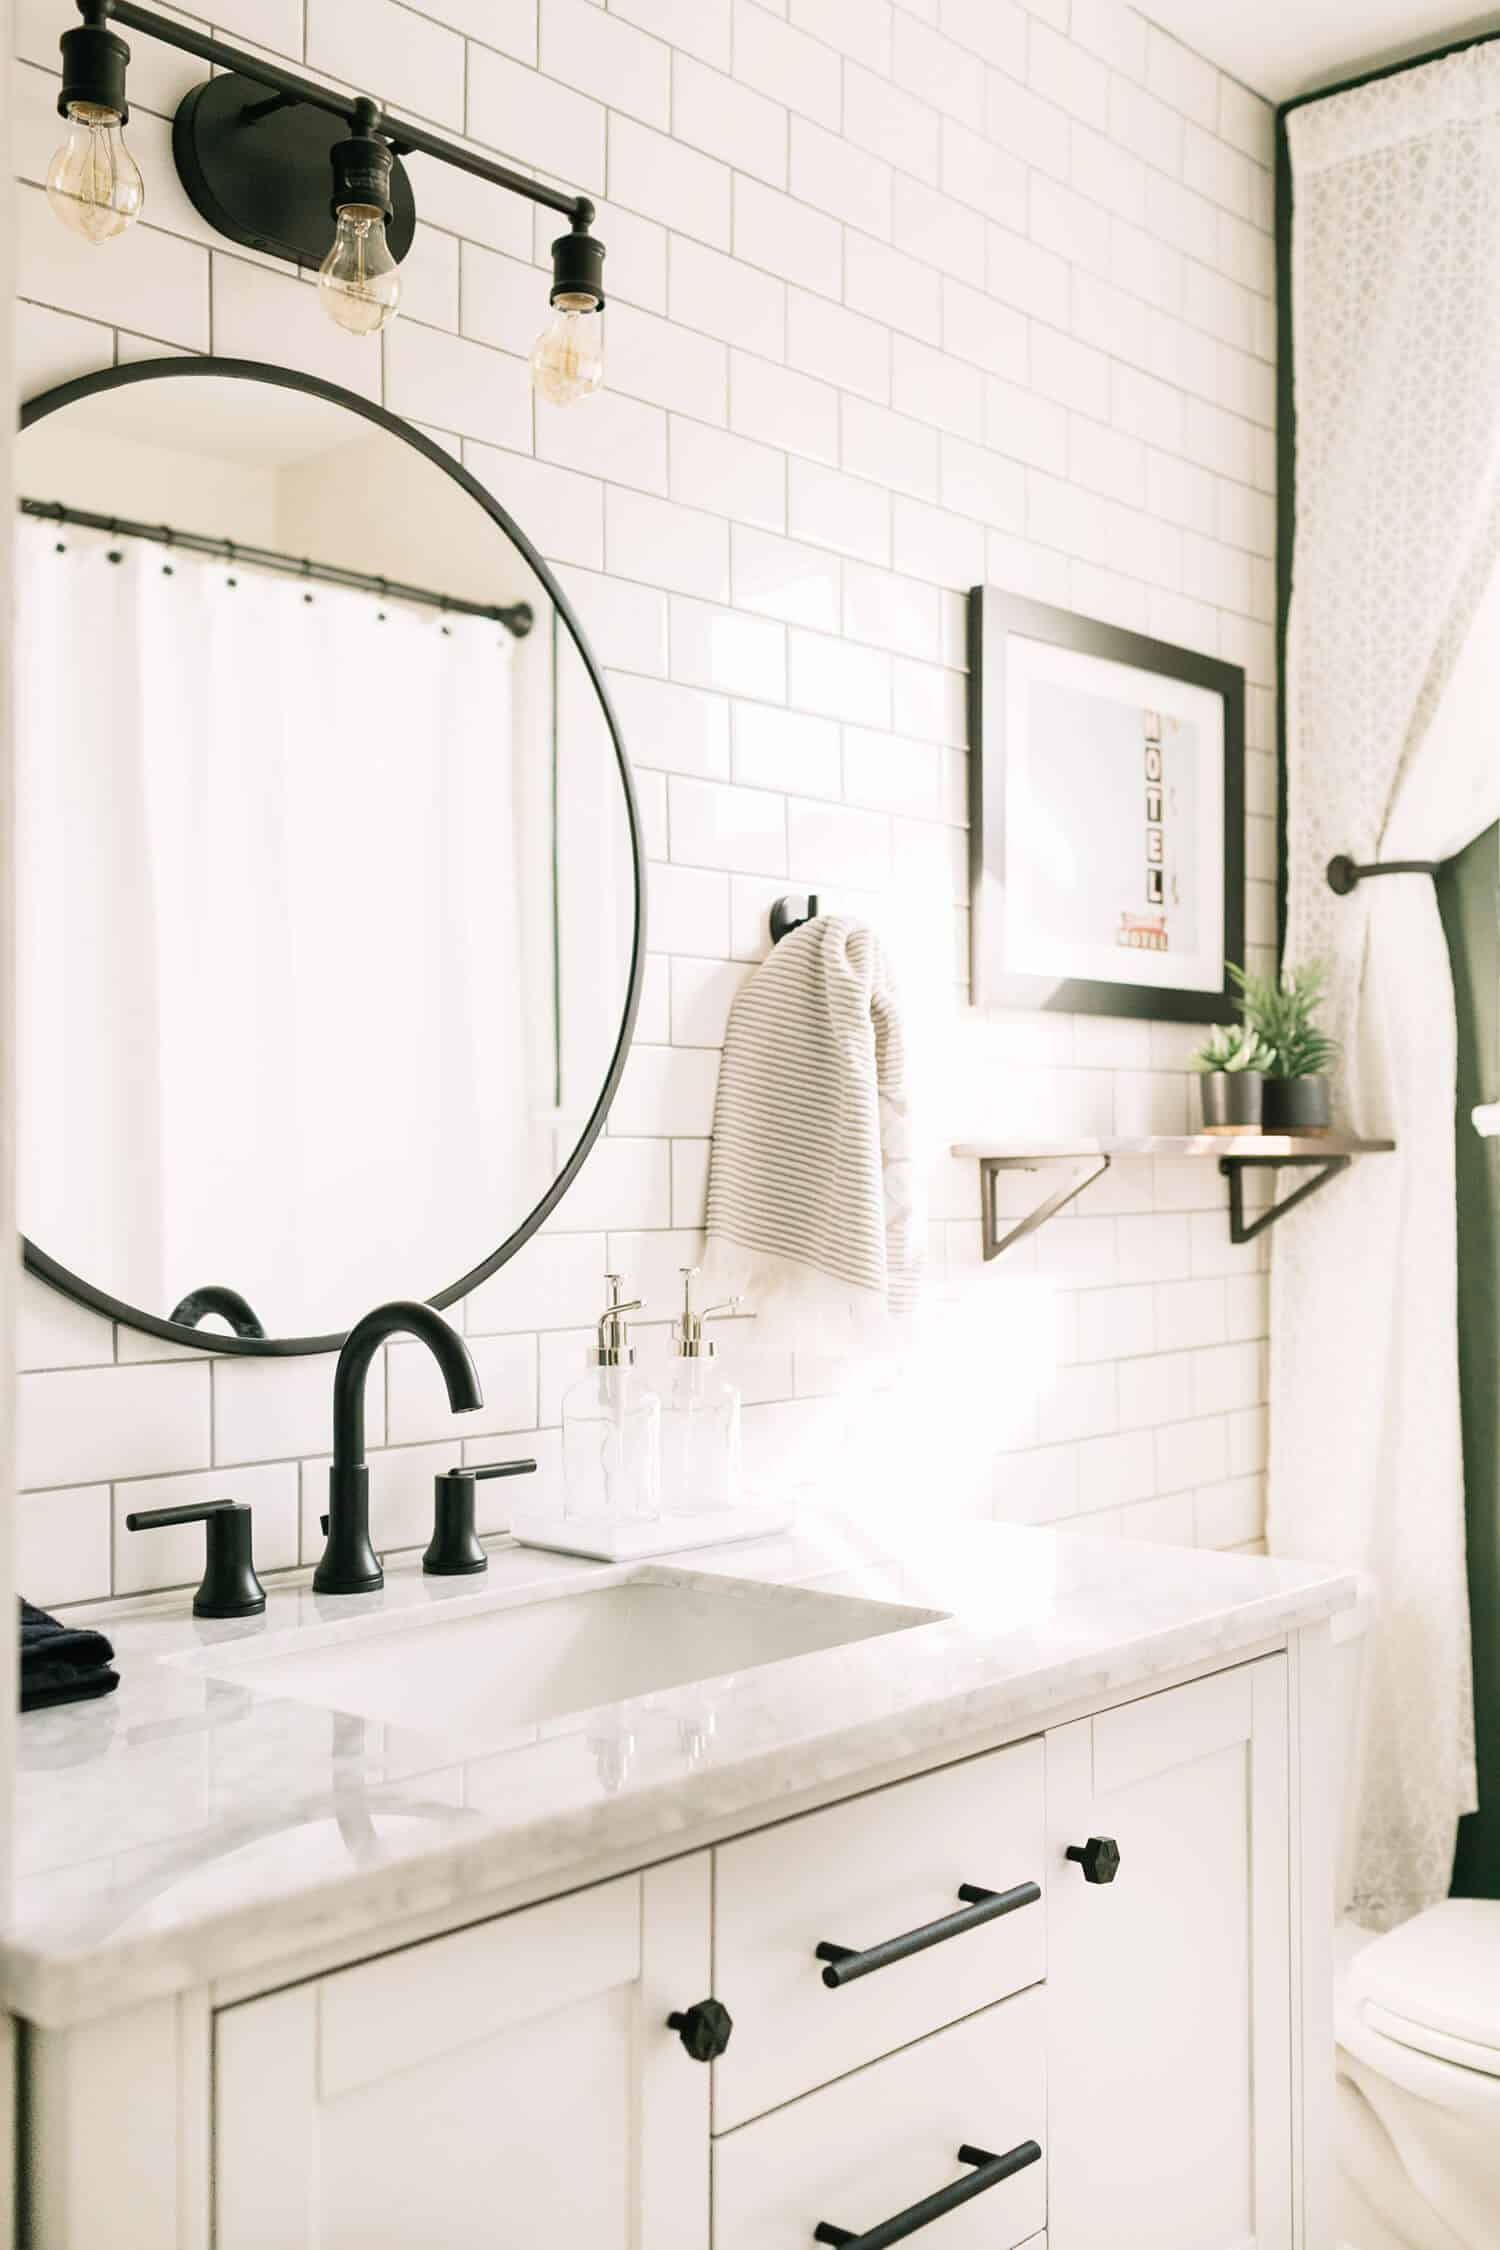 Elsie's Master Bathroom Tour (Before + After) - A Beautiful Mess on